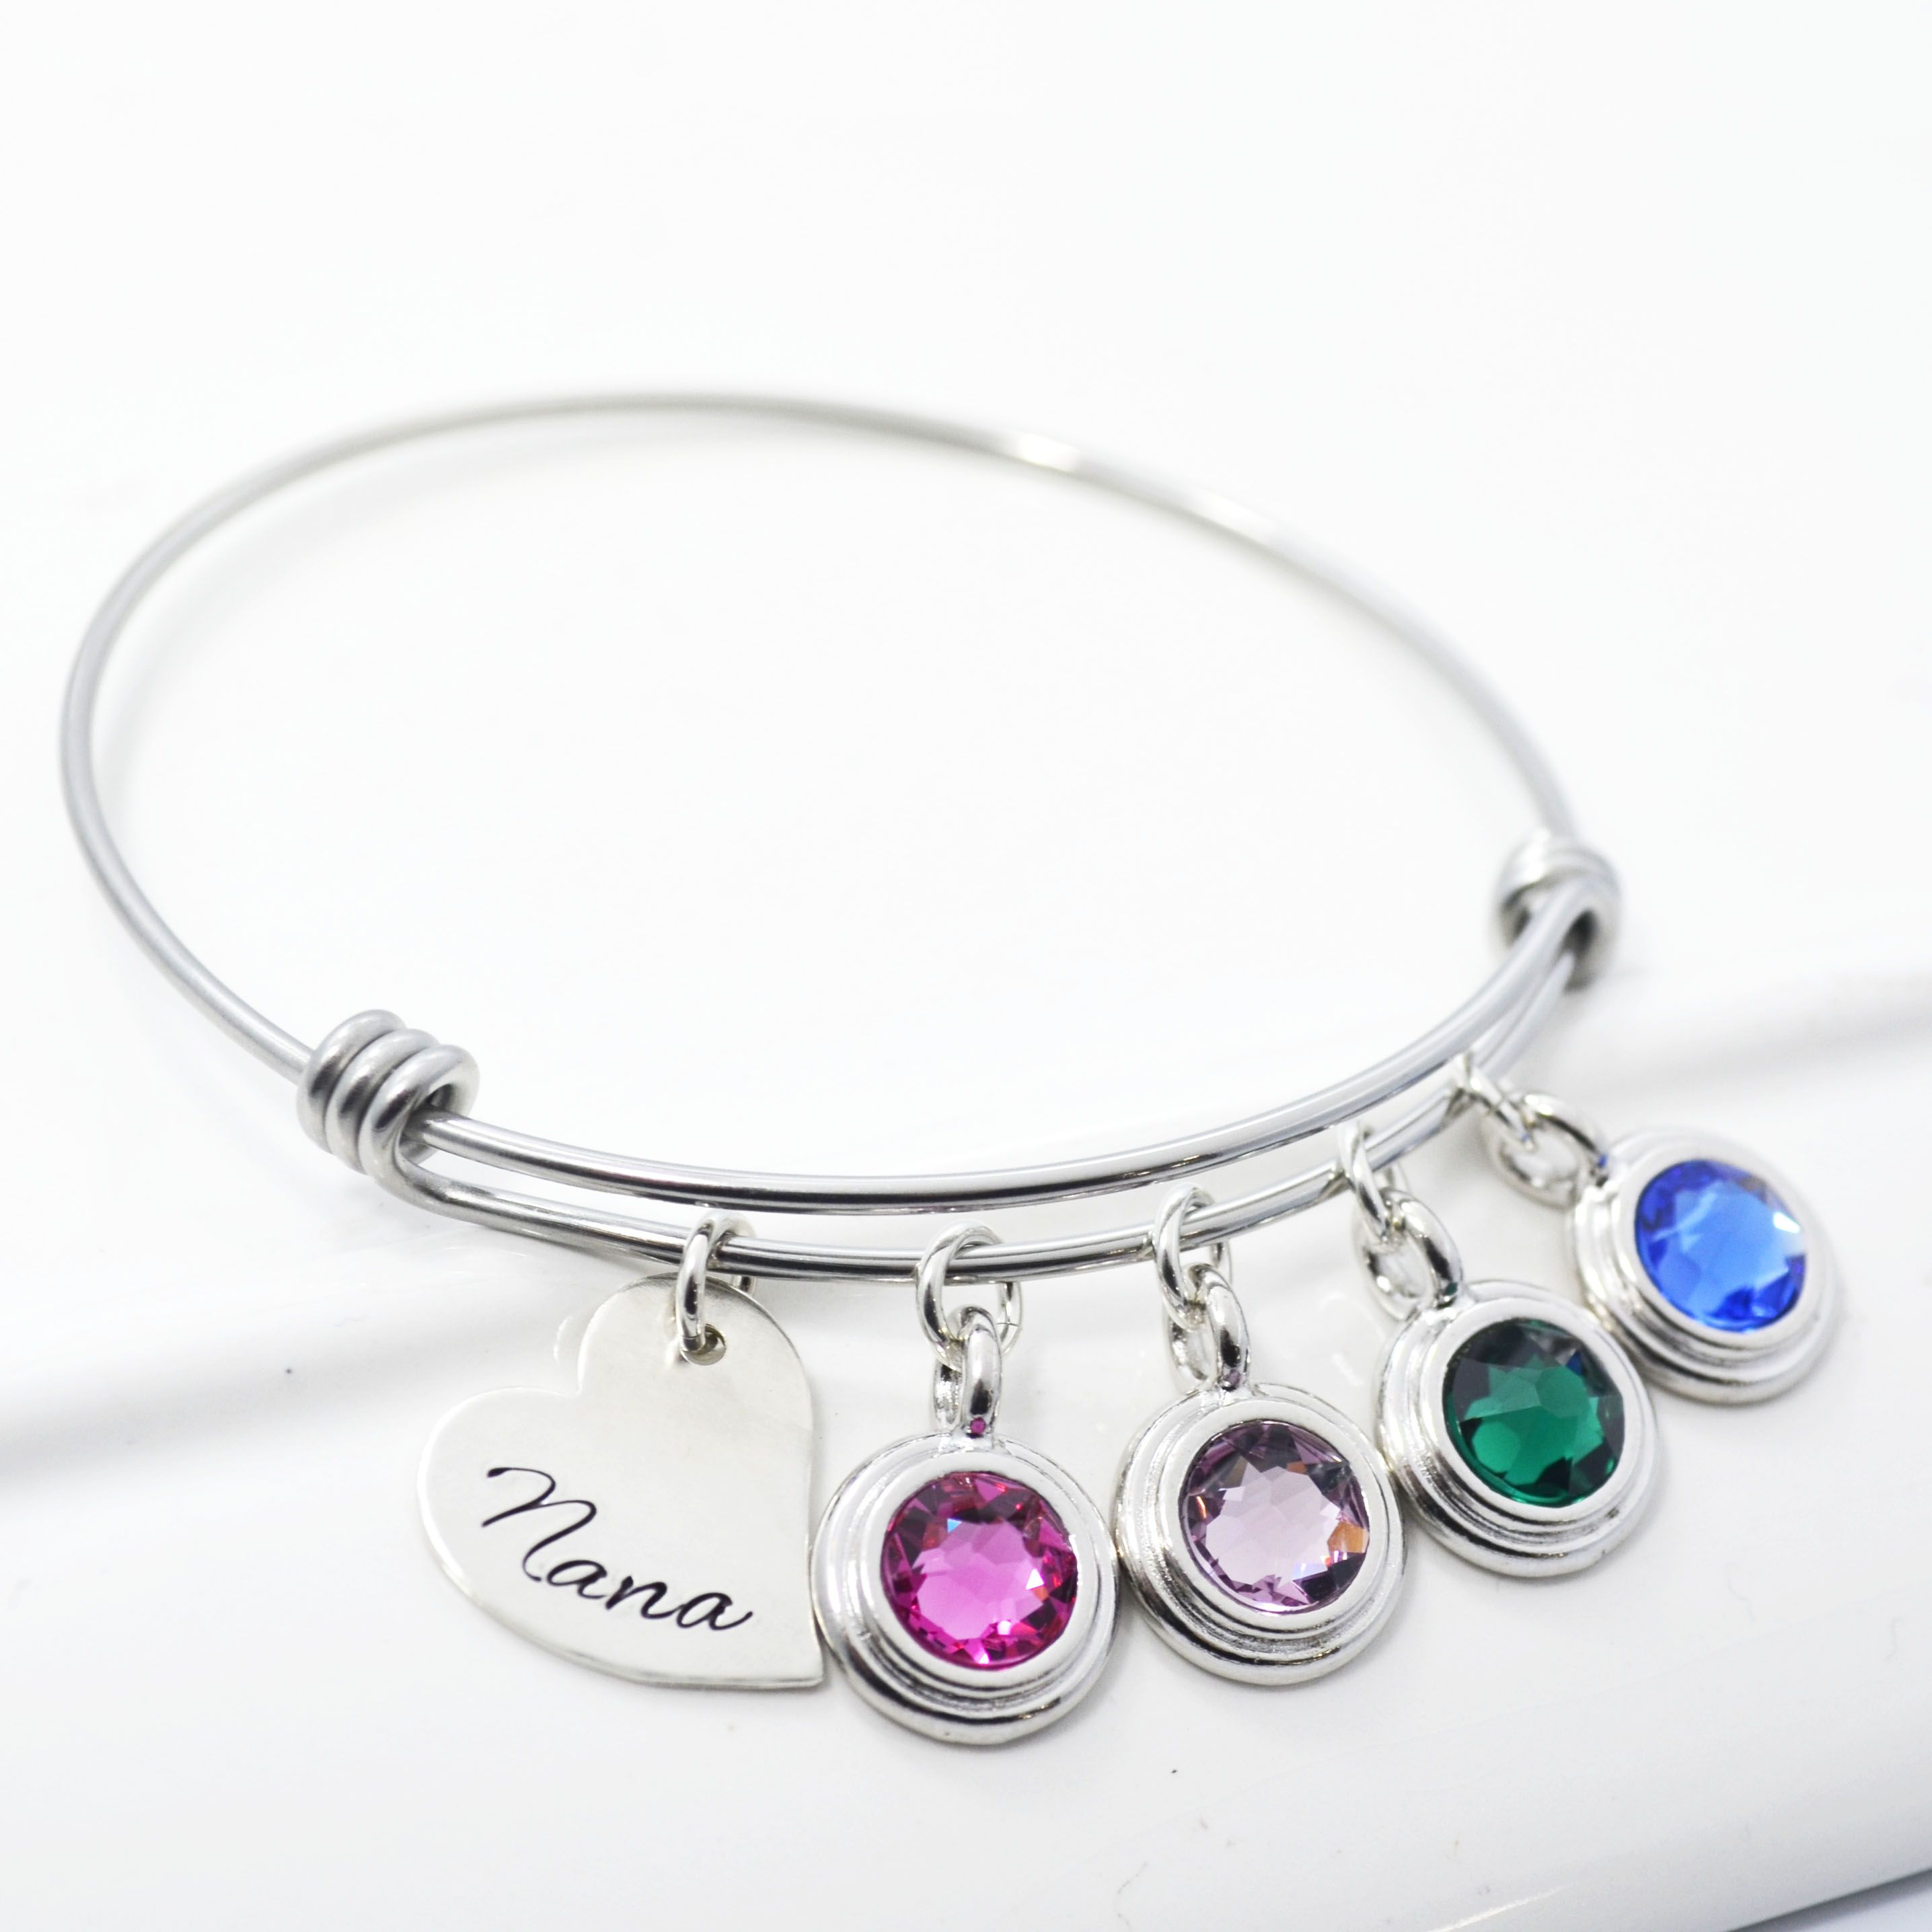 products designs by inspirational il plain bracelet and cuff personalised sterling fullxfull bangle bangles jewellery ltd co glam bracelets silver